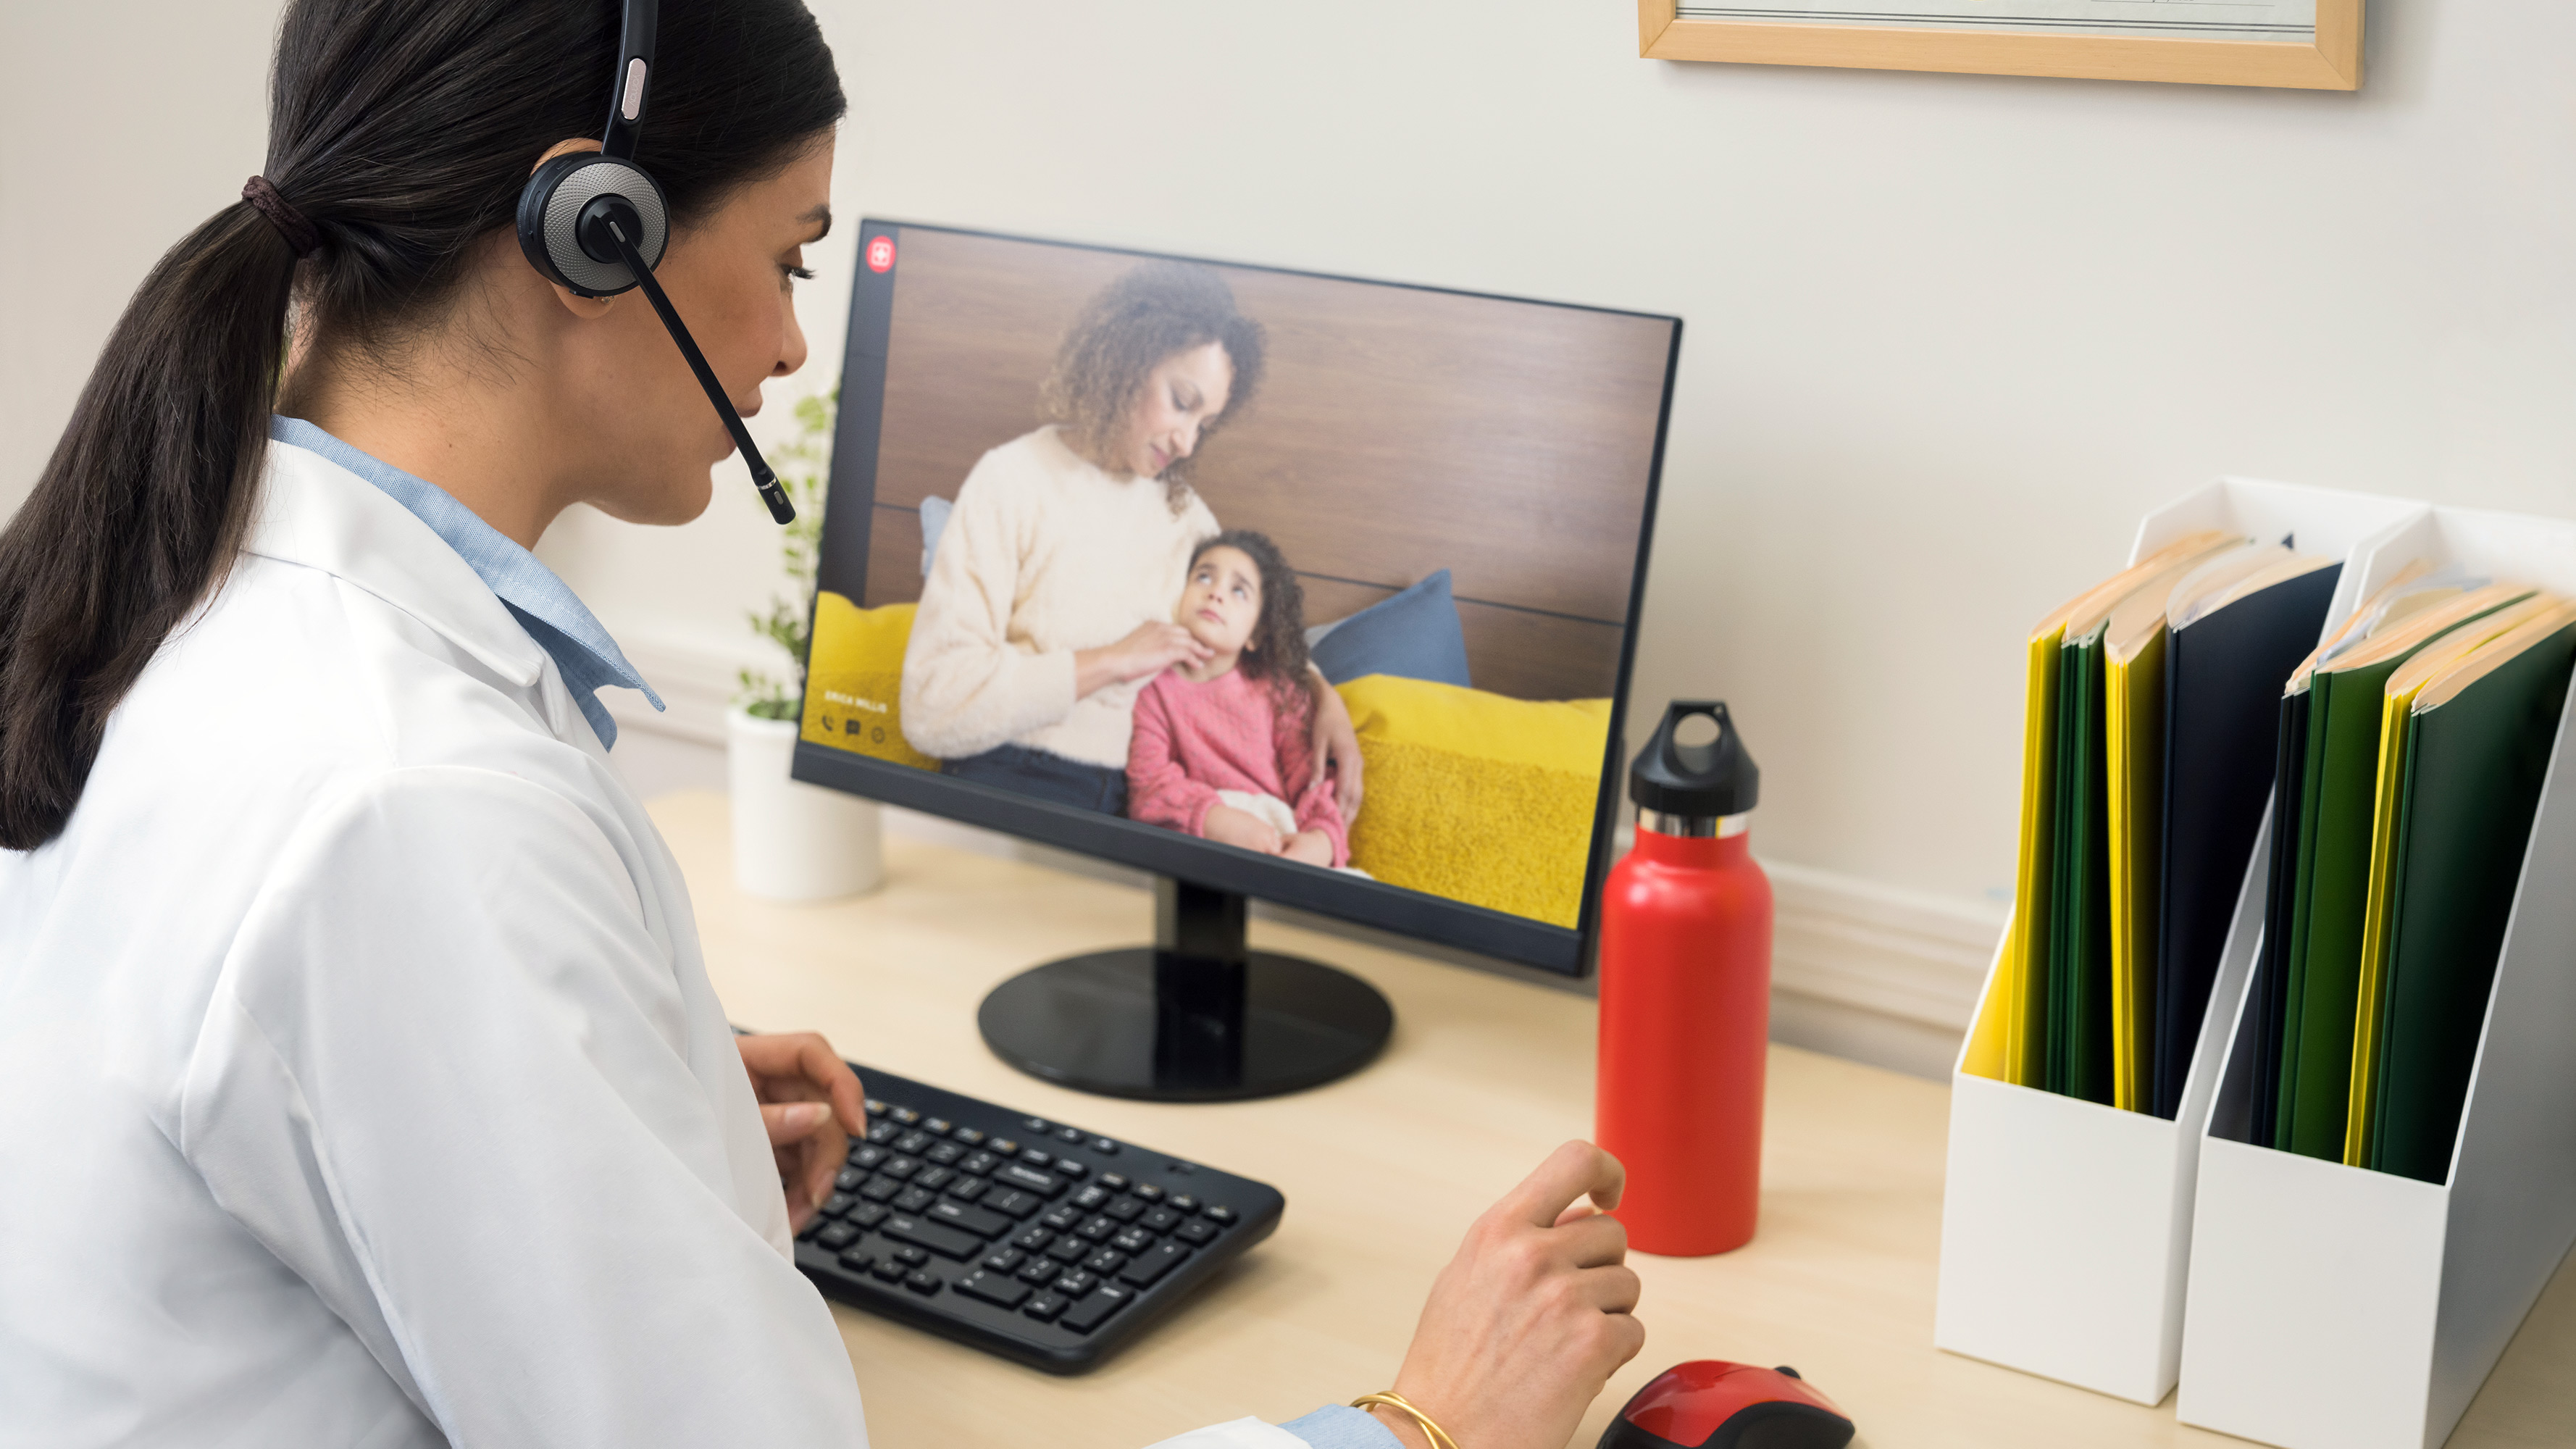 A practitioner consults a female adult patient with a child via video call during a telemedicine visit.